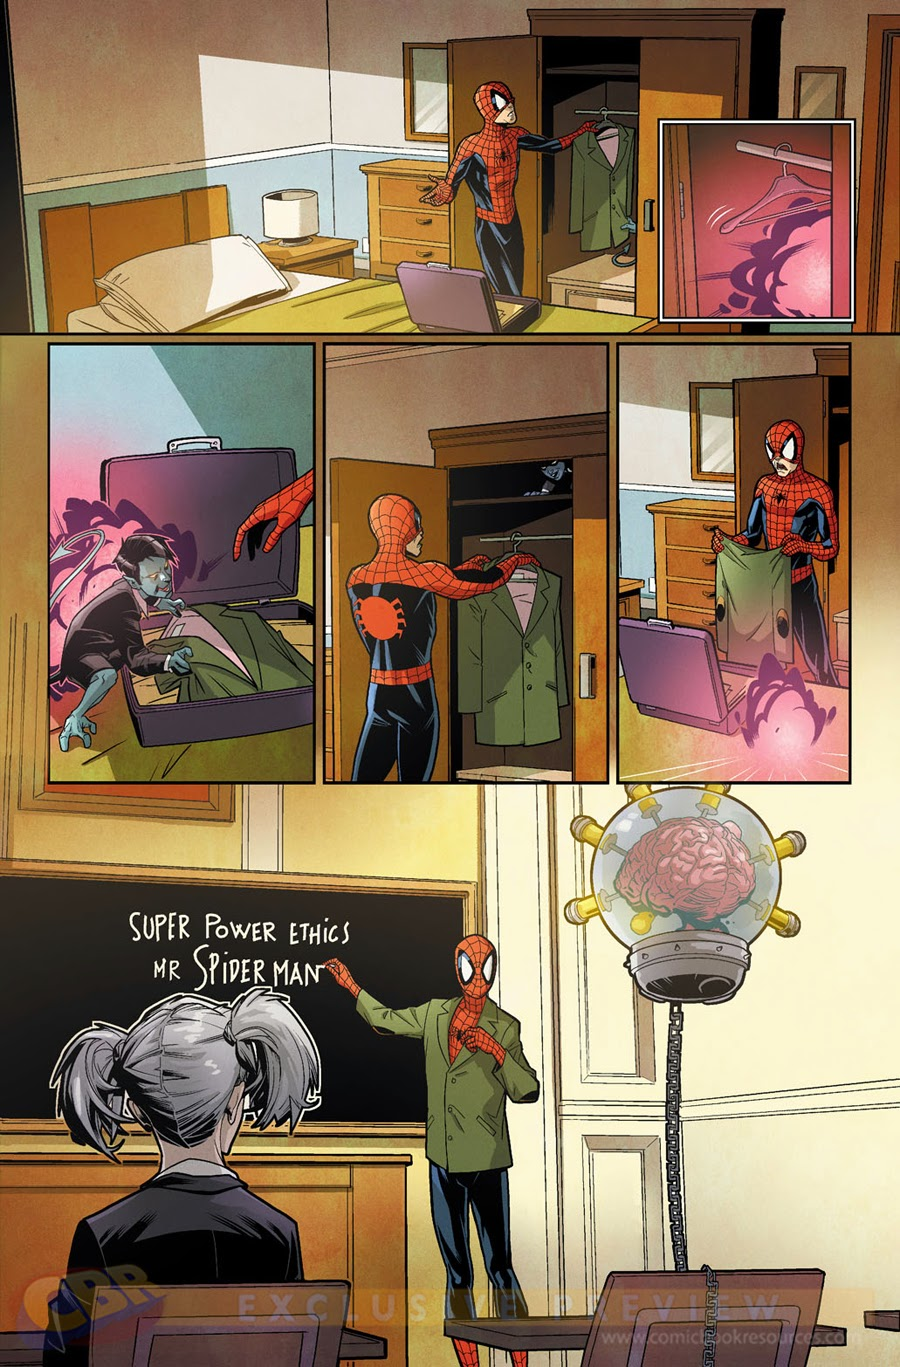 Spiderman and the X-men 1 marvel jean grey school mutants ecole pour jeunes surdoués